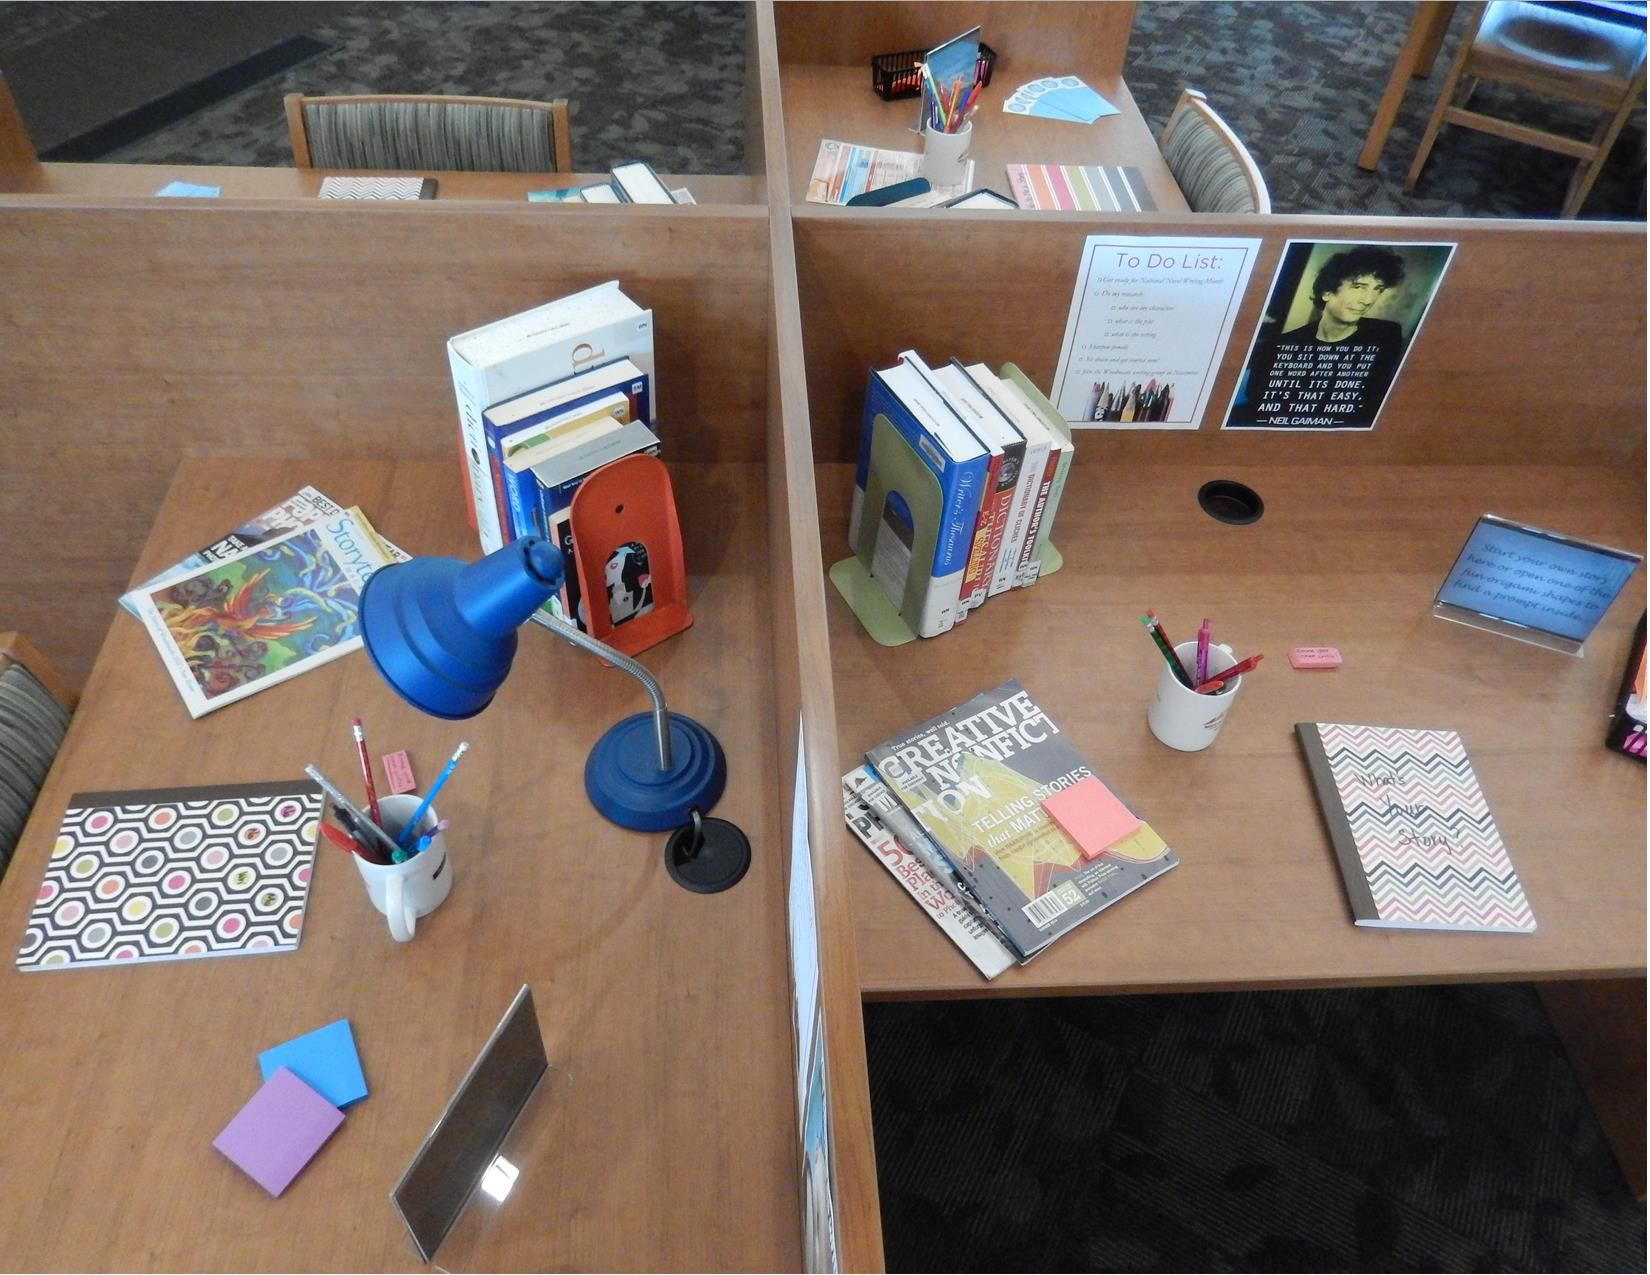 National Novel Writing Month - writing stations set up in study carrels